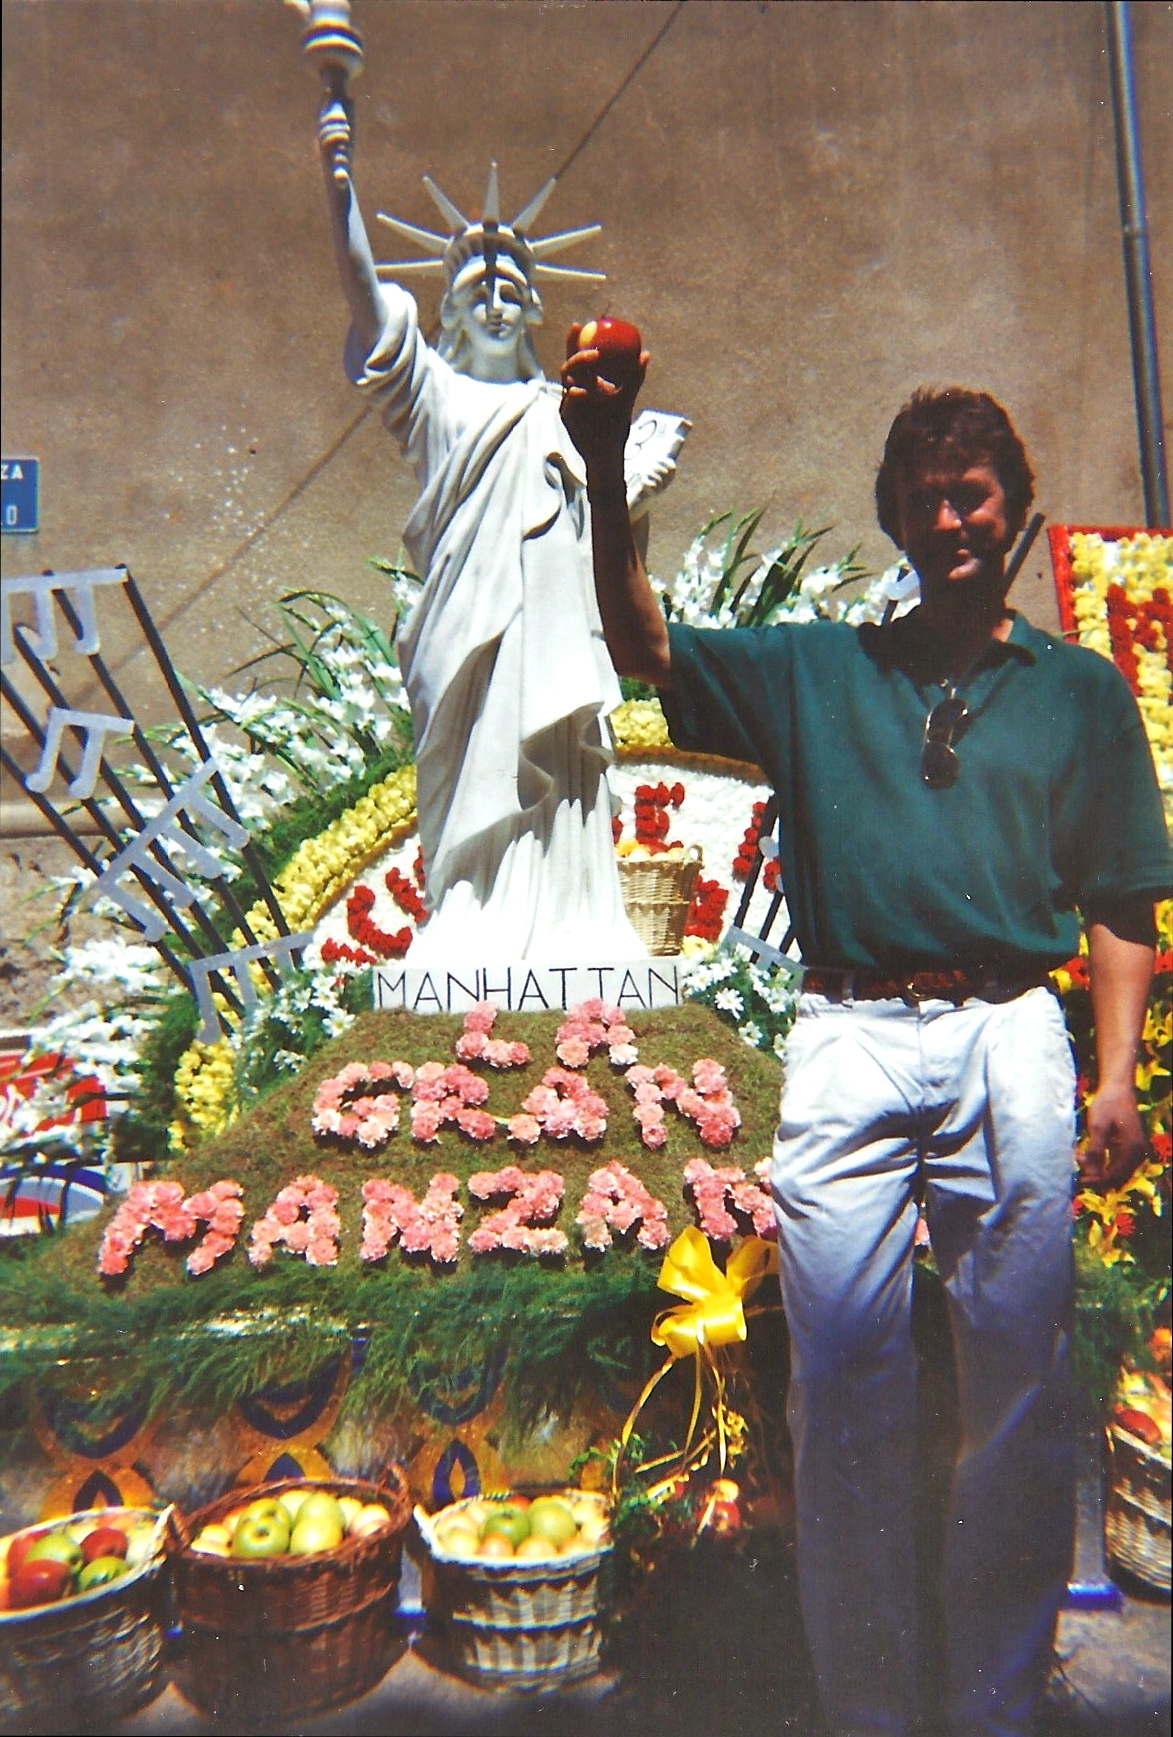 They made a big deal out of 'La Gran Manzana' during the flower parade in Buñol. Henrie Adams and his